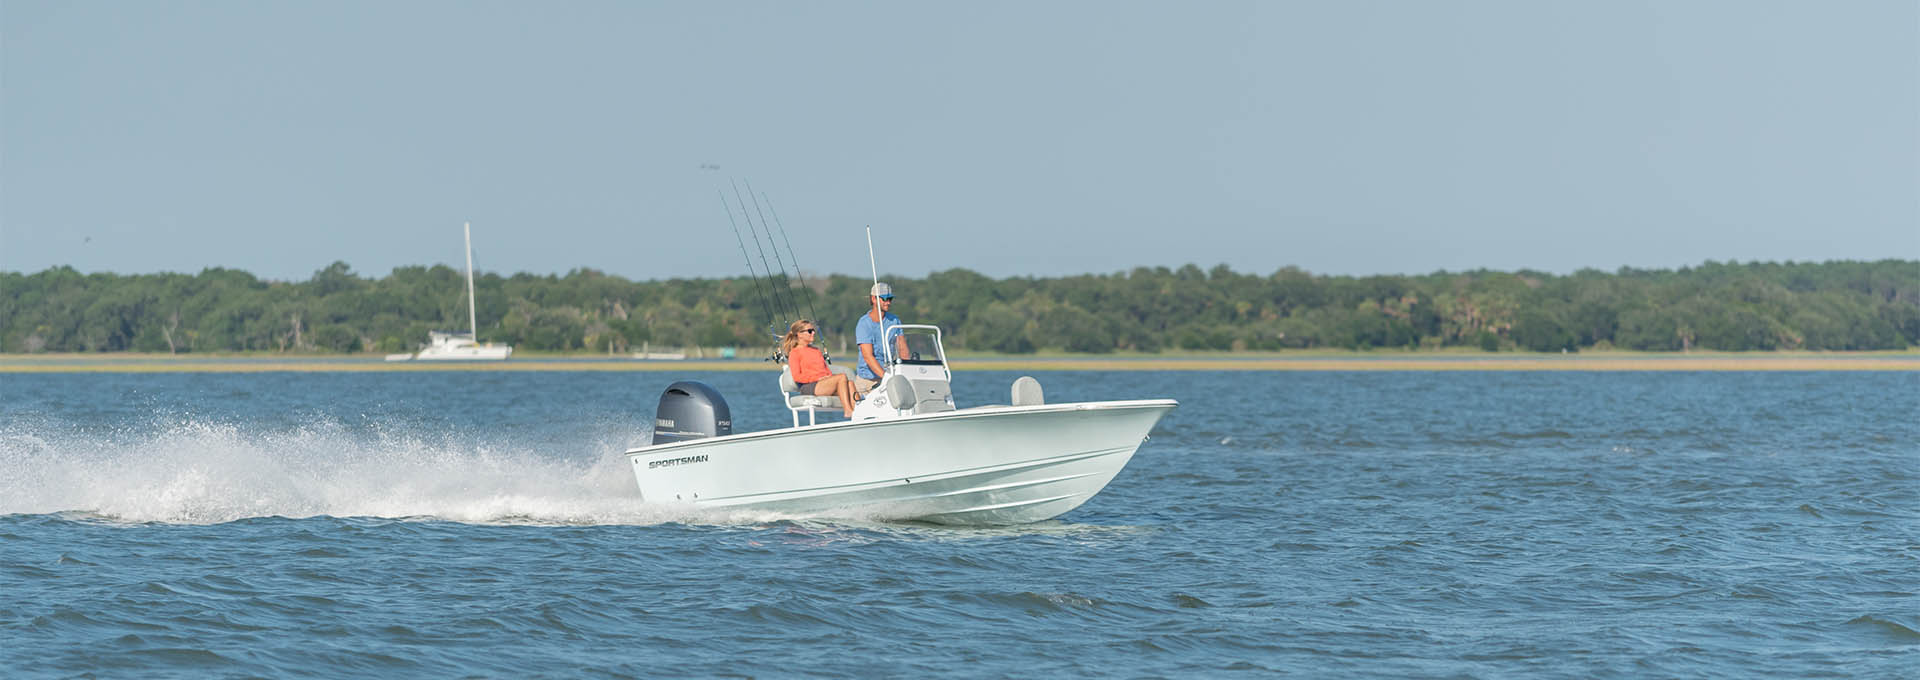 Main image of the Masters 207 Bay Boat.